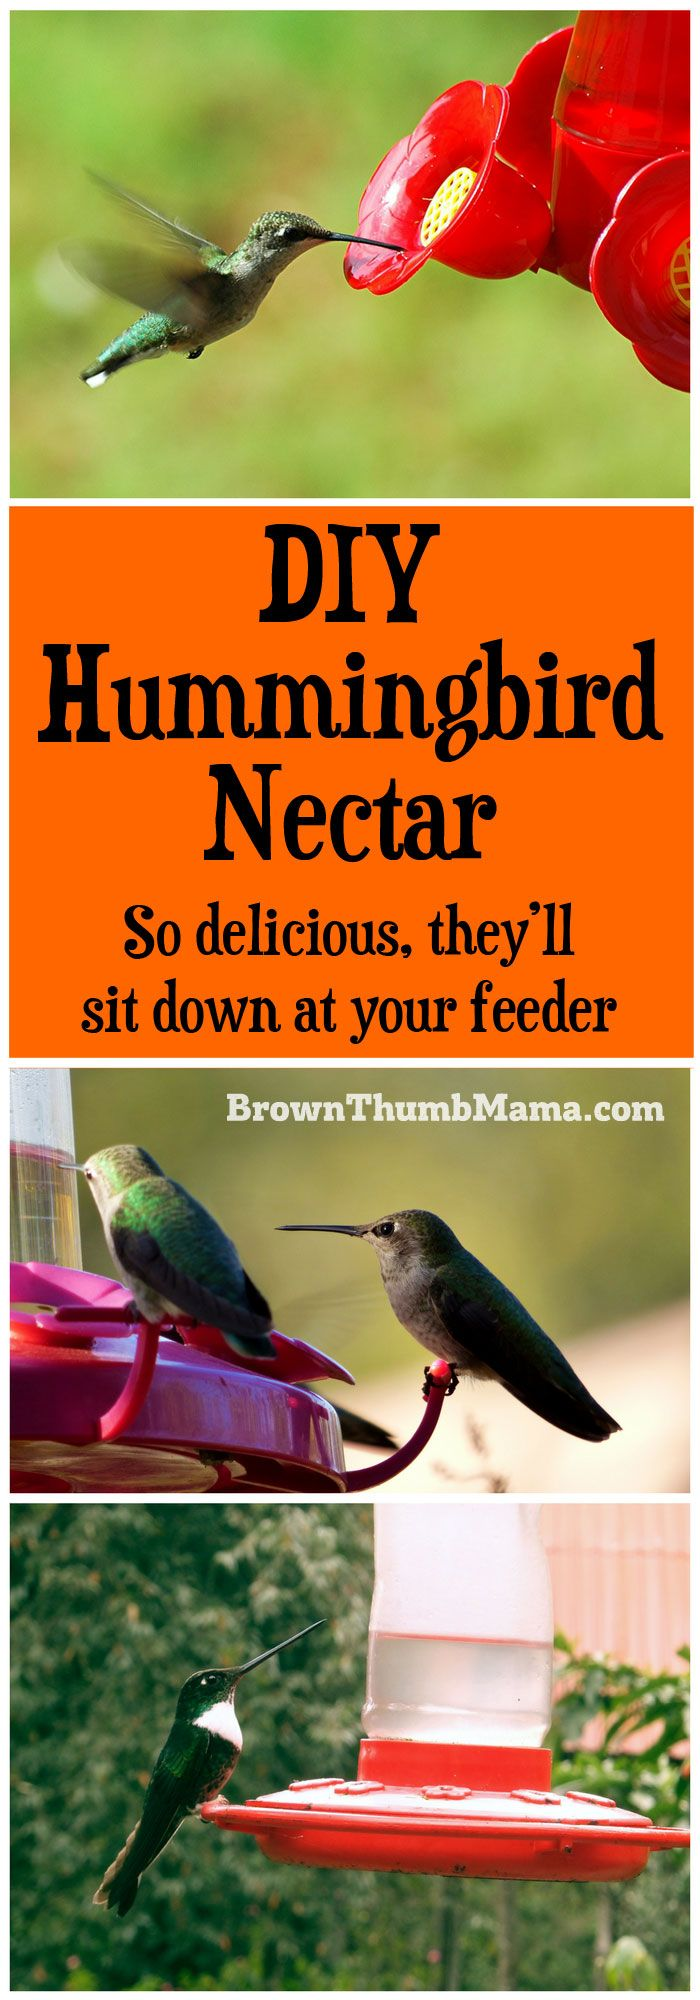 You can make #hummingbird nectar with two items you already have in your #kitchen. Plus important tips on what you should NEVER feed to hummers!